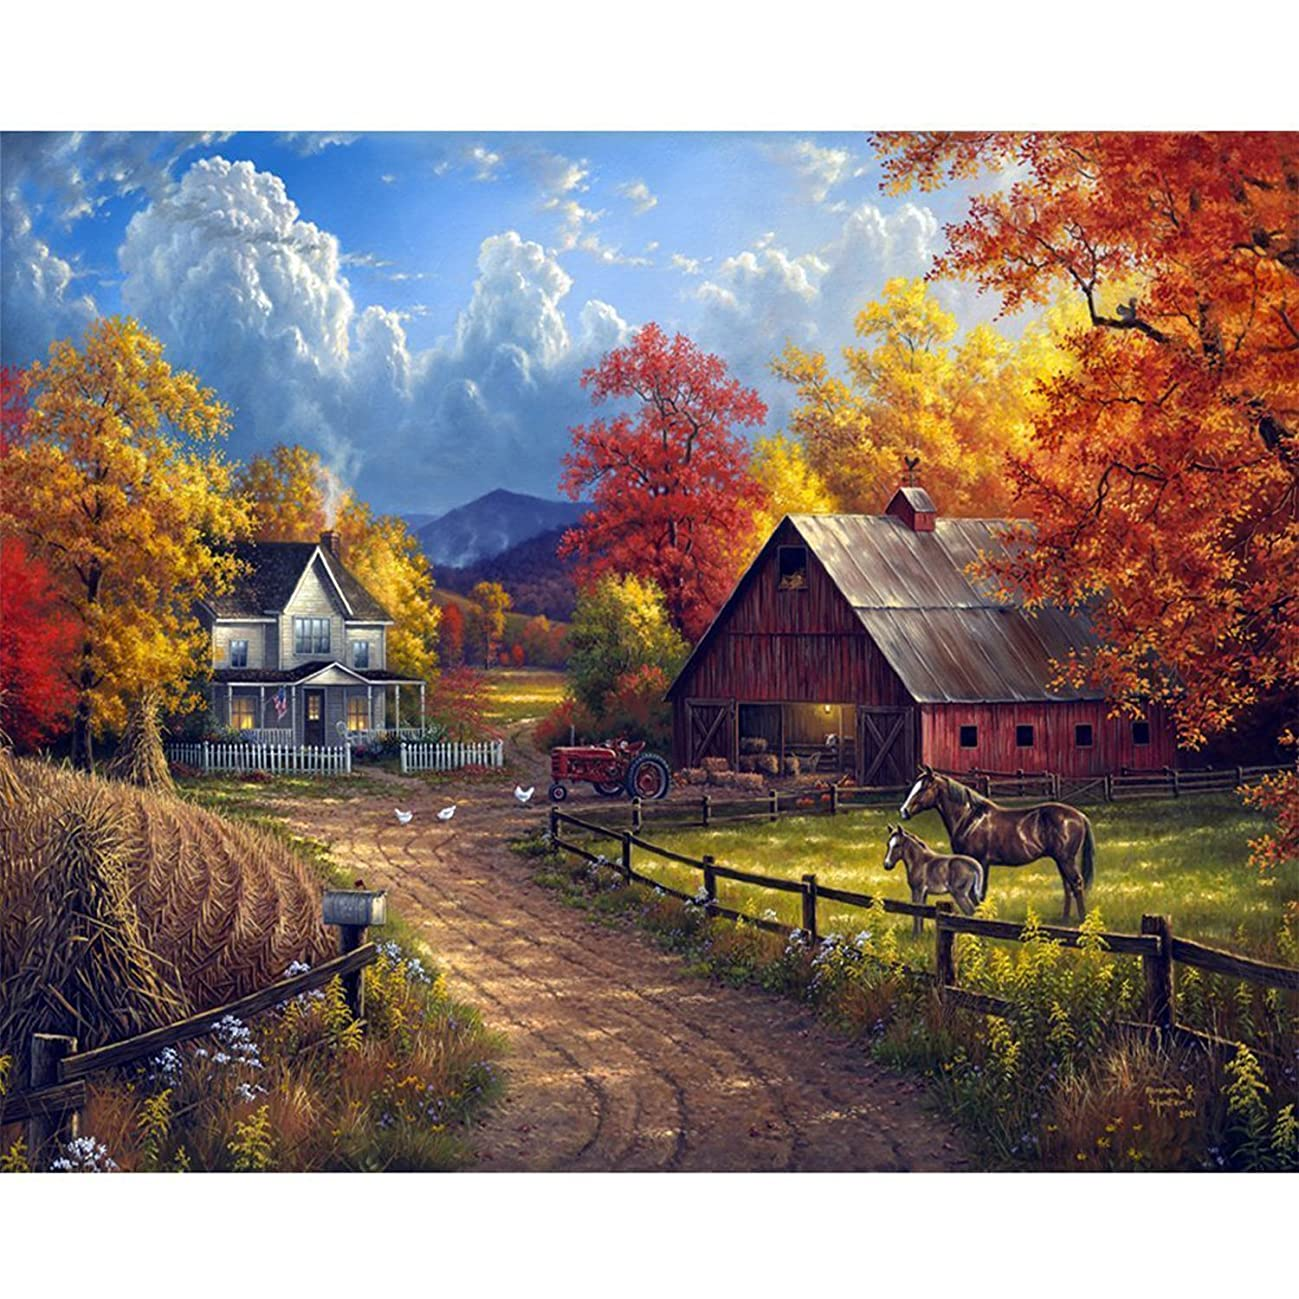 5D DIY Diamond Painting kit Adults Full Drill Arts Crafts Wall Stickers for Living Room Village Farm(12X16 inches)